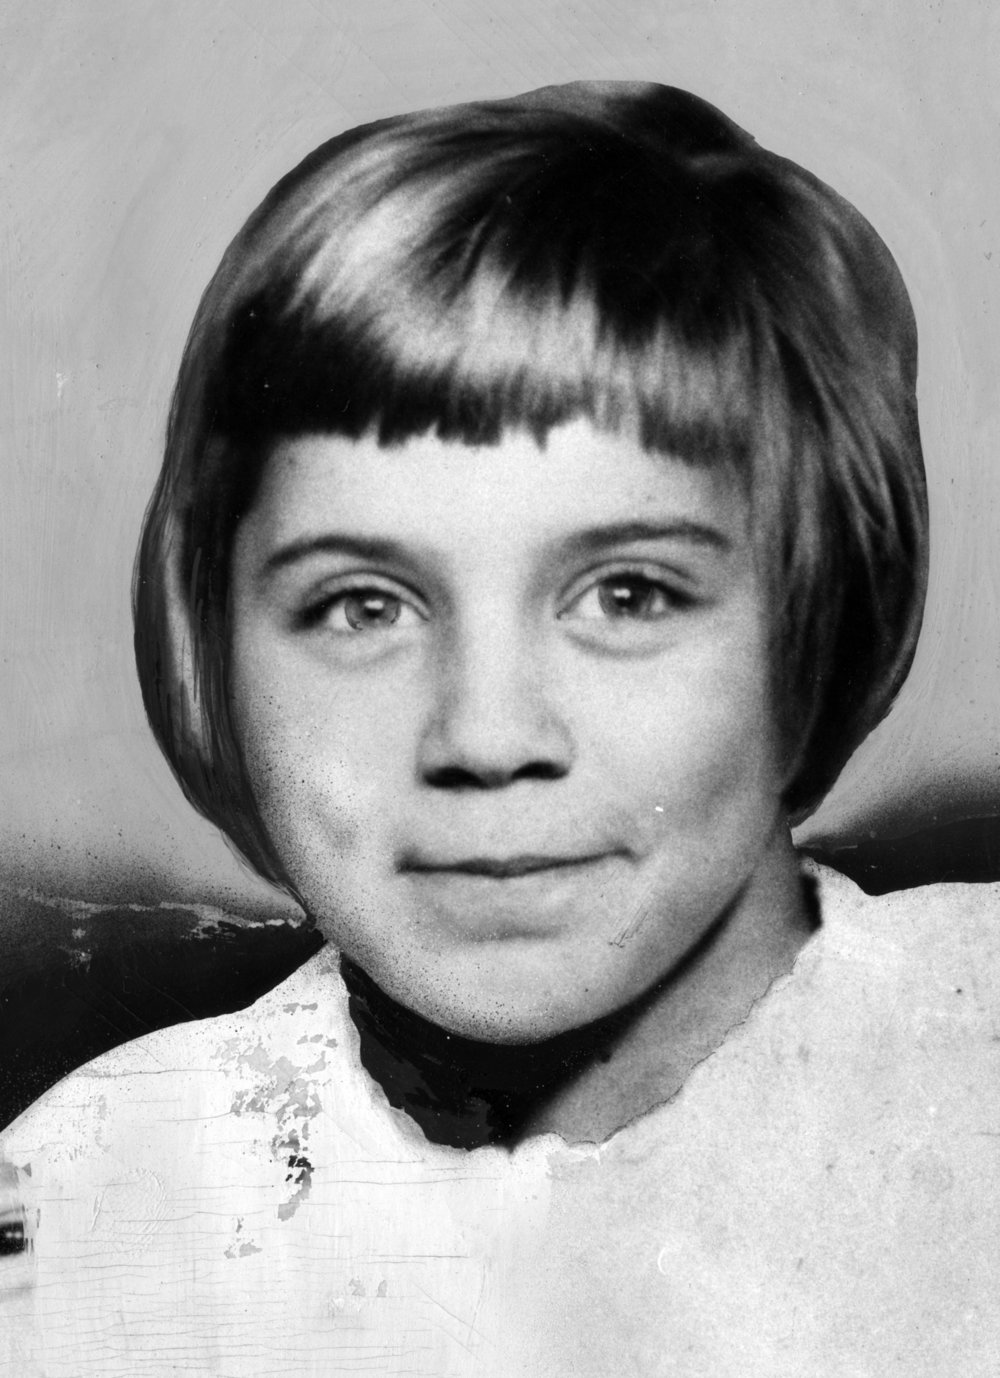 DEBBIE LOU FIJAN - 2.11.1966 West Chicago, ILDebbie stayed after school to keep score at a basketball game. When her mom came to pick her up she was not there. Her teacher / suspect Loren Schofield was the last one to see her alive. Hours later she was found near the intersection of Fair Oaks & Lies Roads in an icy ditch. She was stabbed 19 times.Grand jury refused to indict for lack of evidence. Word has it this teacher failed 6 lie detector tests, he burned the clothes he wore that day, and he refused to allow his farm home on Fairoaks to be searched.It is said Debbie was fully clothed and there was no indication of molestation.We hope there will one day come answers and the true killer is named.